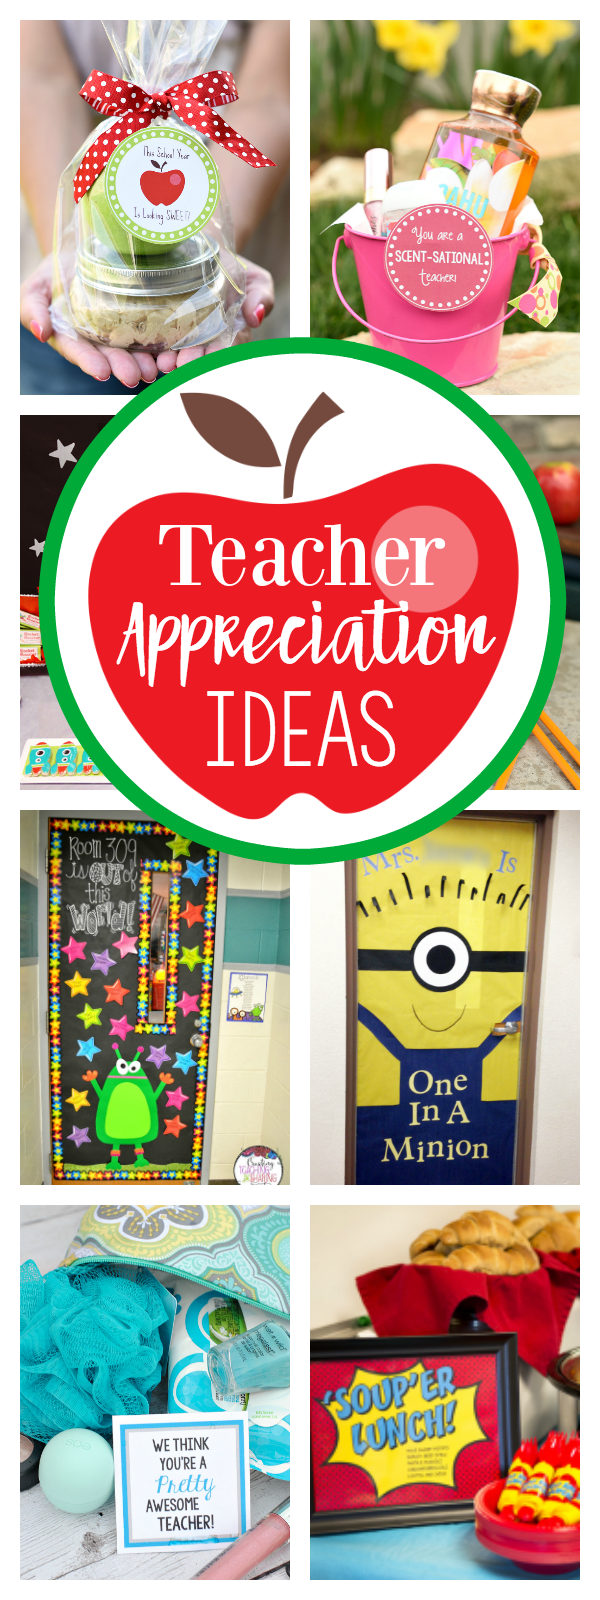 Teacher Appreciation Week Ideas-Teacher Gift Ideas, Door Decorations, Themes and More. So if you need some fun ideas to show your teacher your appreciation, we have you covered. #teacherappreciation #teachergifts #teacherappreciationweek #weloveteachers